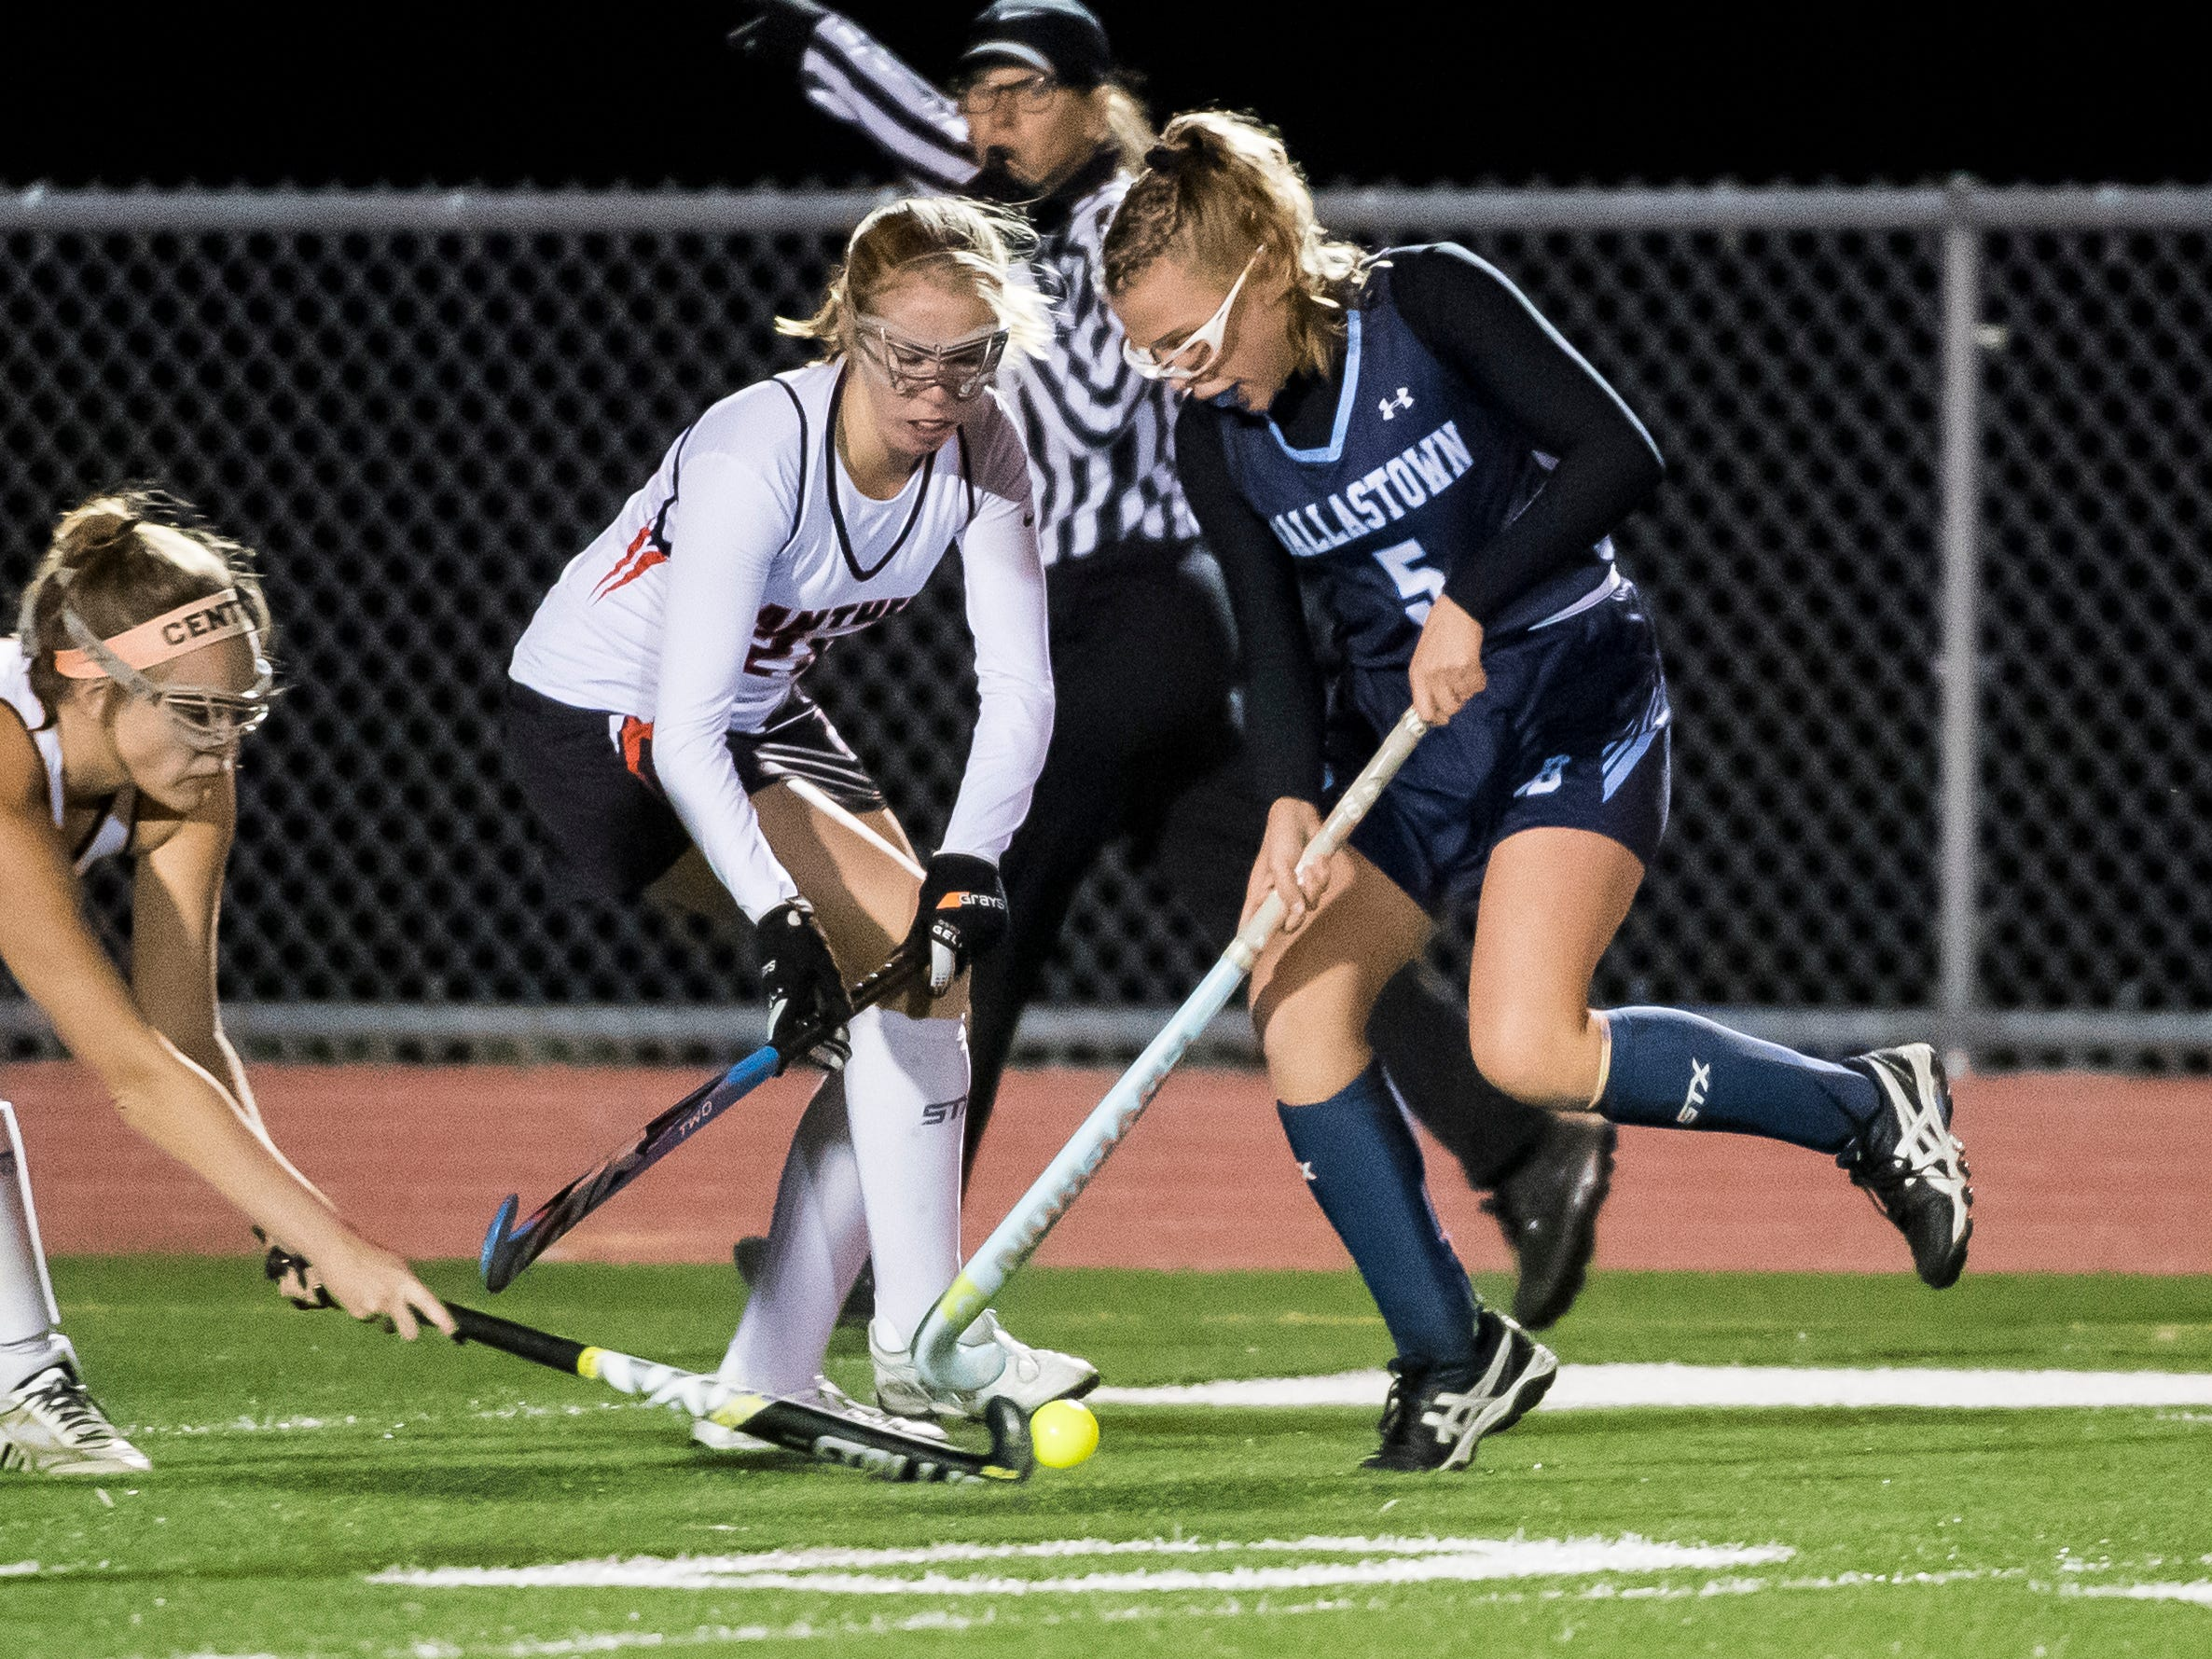 Dallastown's Lily Cantabene (5) fights for the ball with two Central York players Action during a YAIAA tournament semifinal game on Thursday, October 18, 2018. The Panthers won 2-0 and advance to the championship game against Bermudian Springs on Saturday.